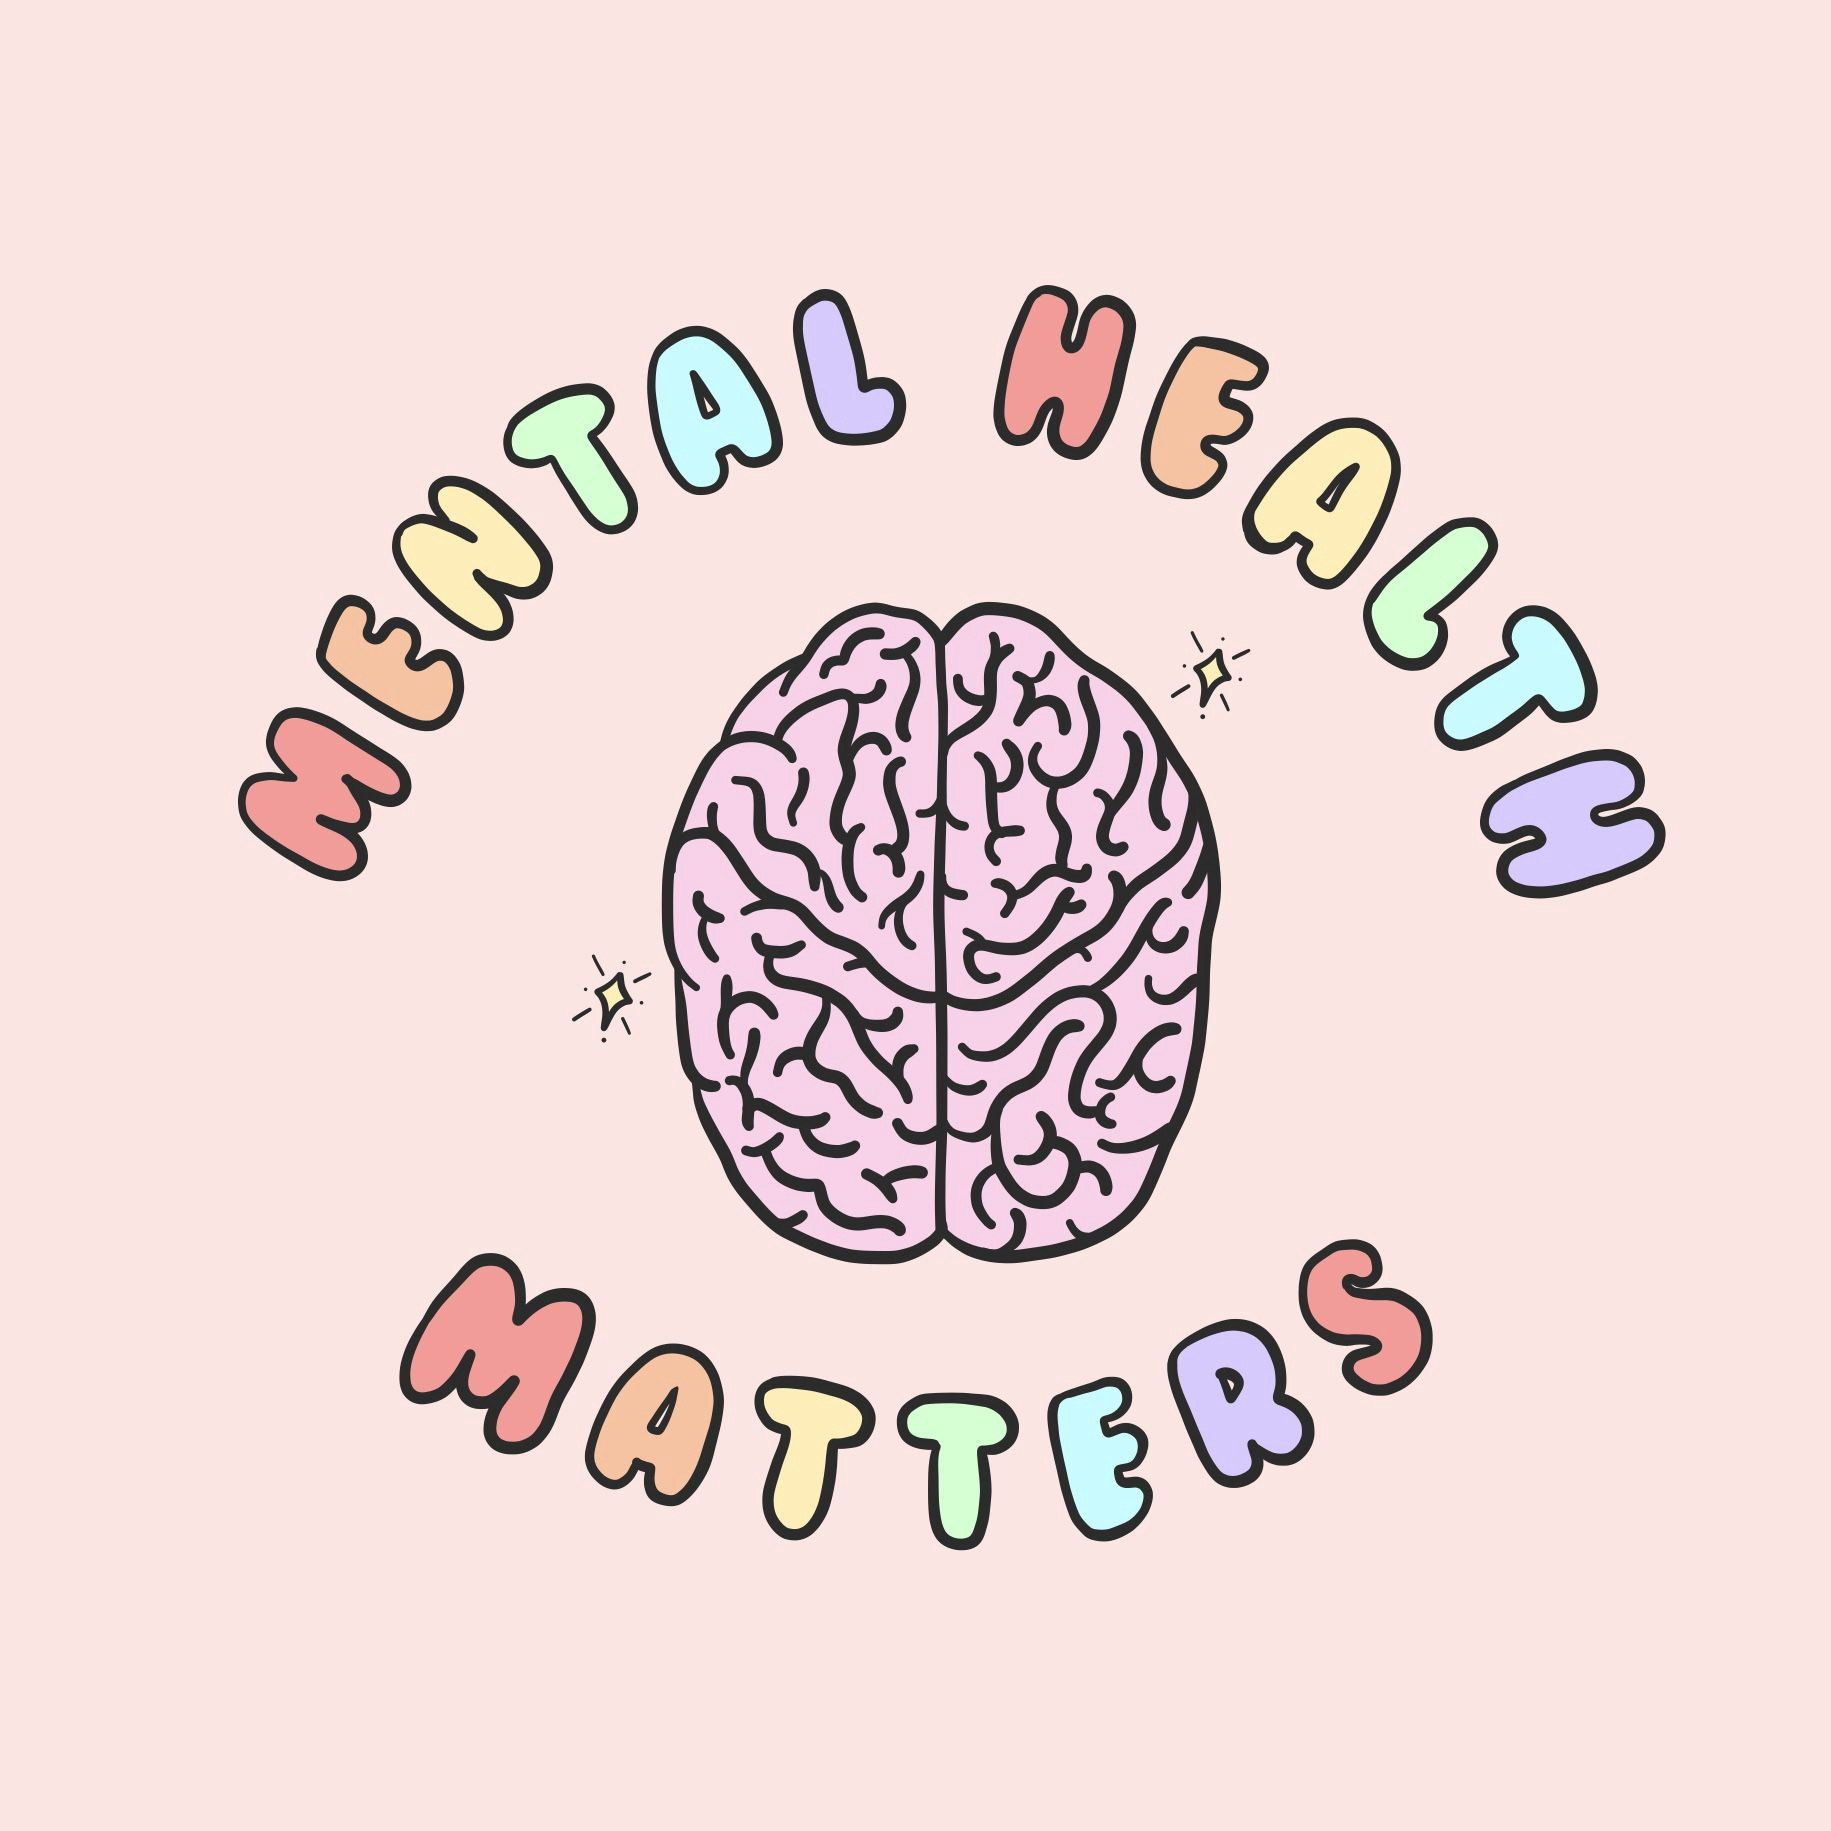 Mental Health Issues Come In All Colors - Education for Liberation - Medium